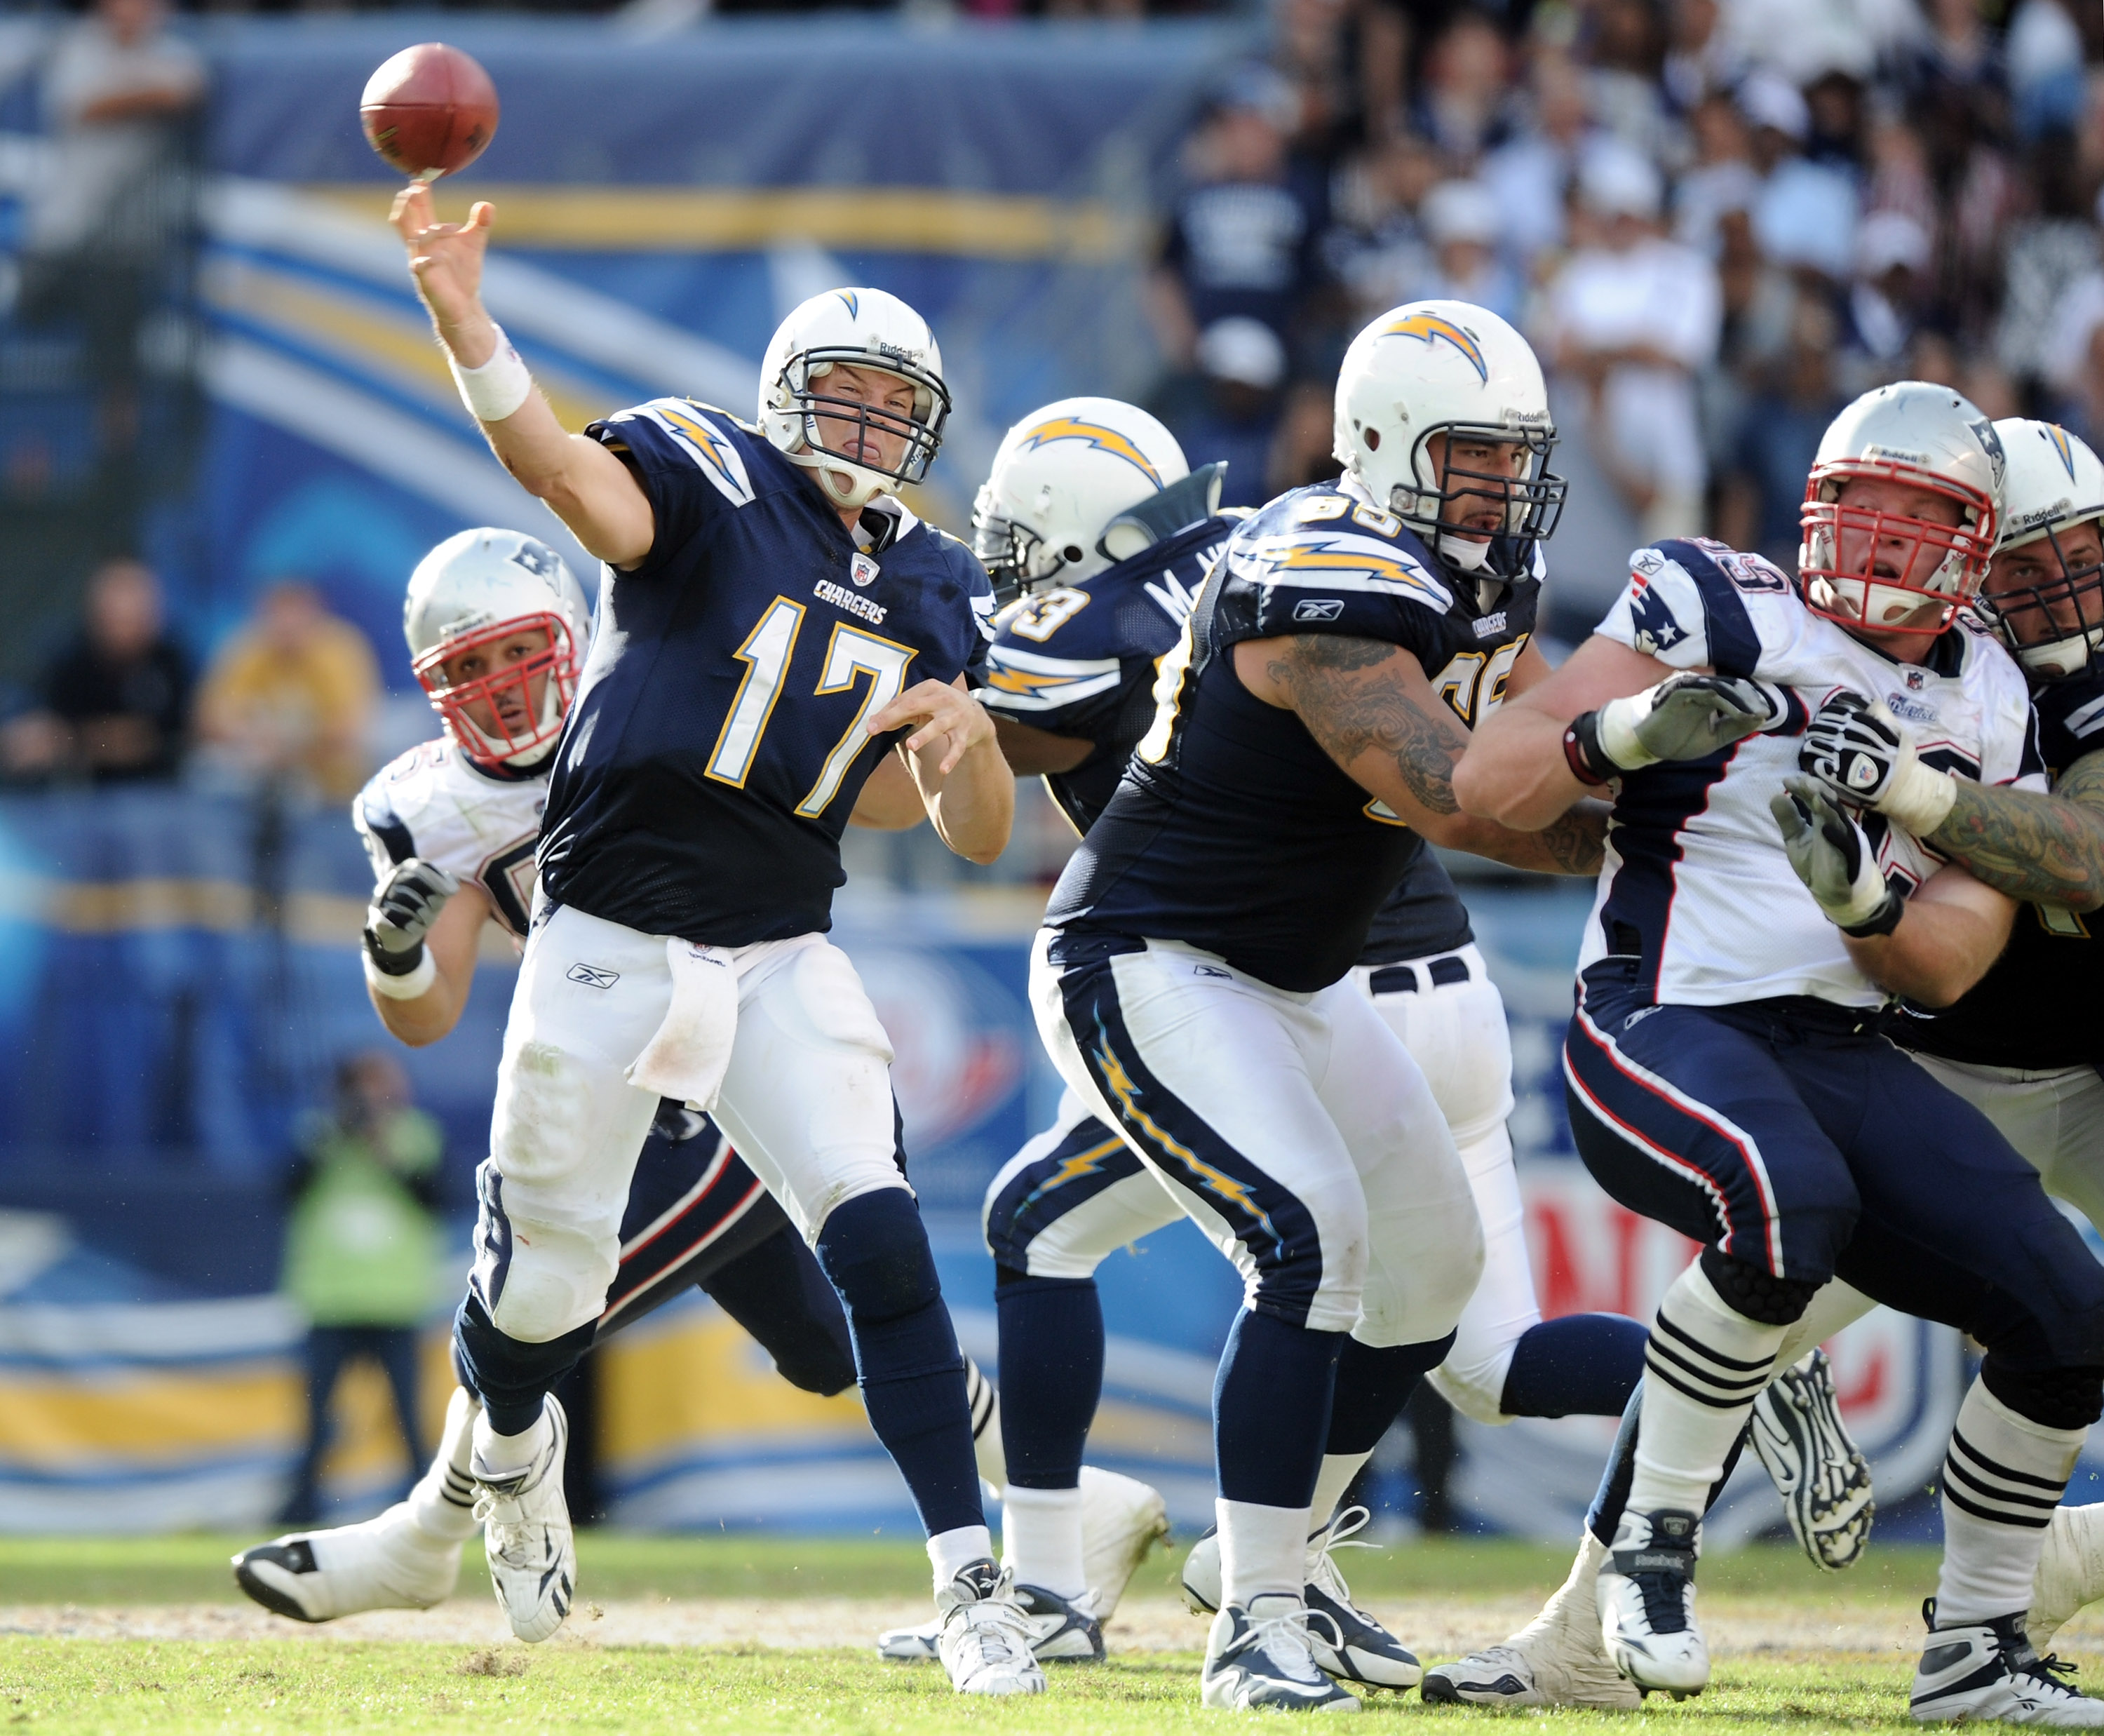 SAN DIEGO - OCTOBER 24:  Philip Rivers #17 of the San Diego Chargers throws against the New England Patriots at Qualcomm Stadium on October 24, 2010 in San Diego, California.  (Photo by Harry How/Getty Images)